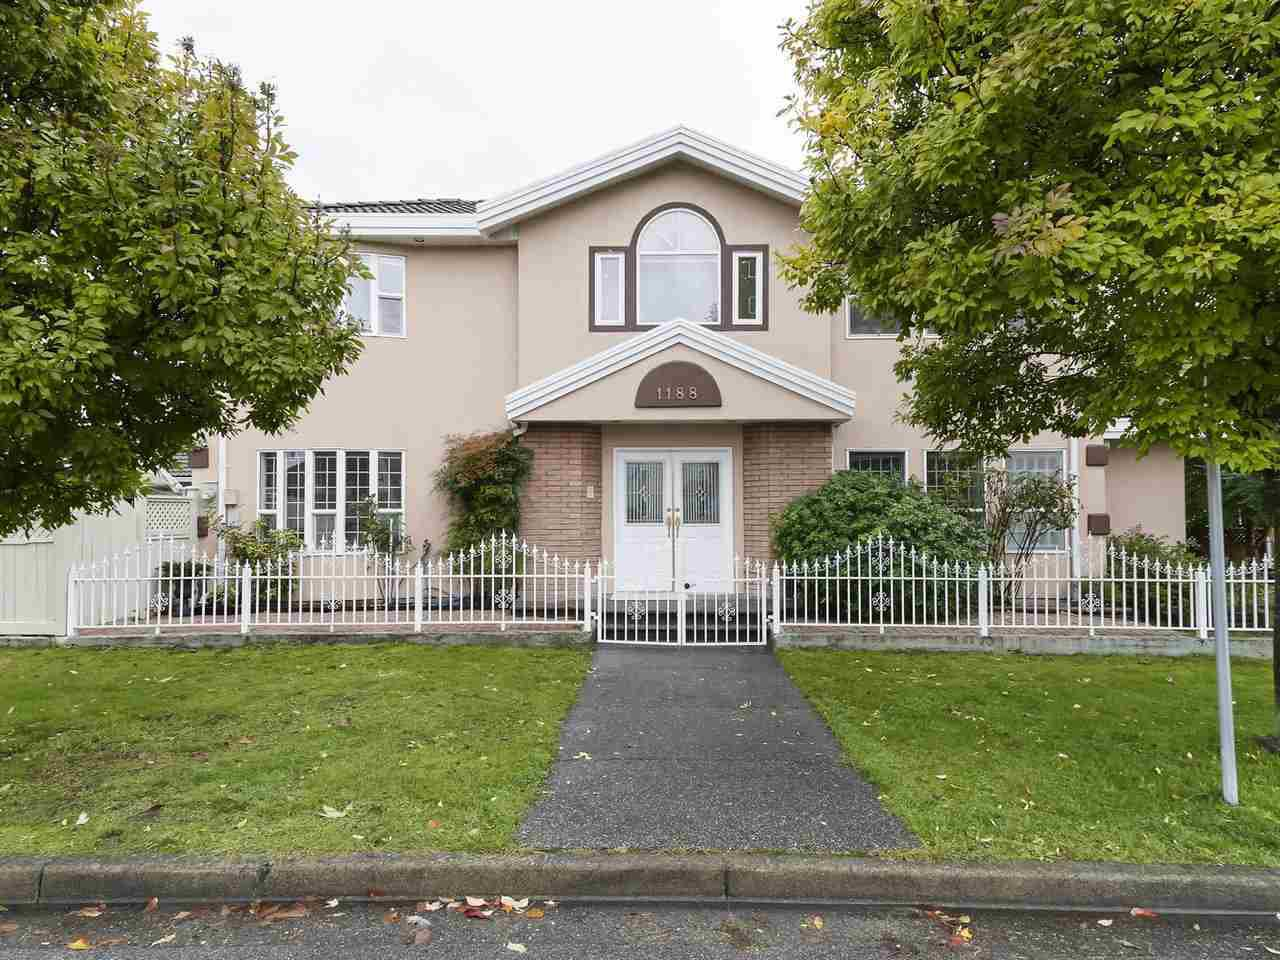 Main Photo: 1188 KOOTENAY Street in Vancouver: Renfrew VE House for sale (Vancouver East)  : MLS®# R2414785